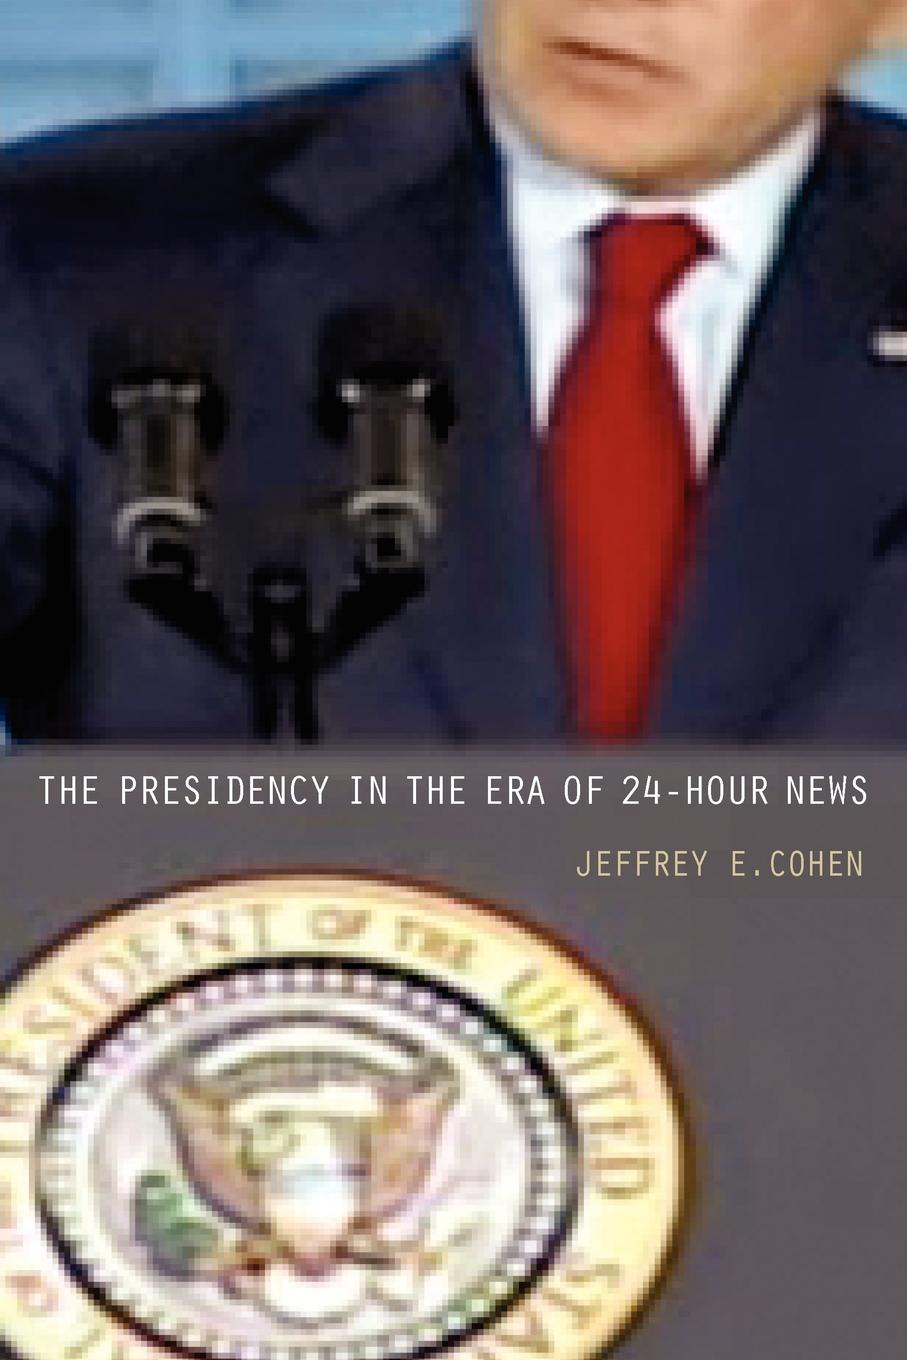 Jeffrey E. Cohen The Presidency in the Era of 24-Hour News